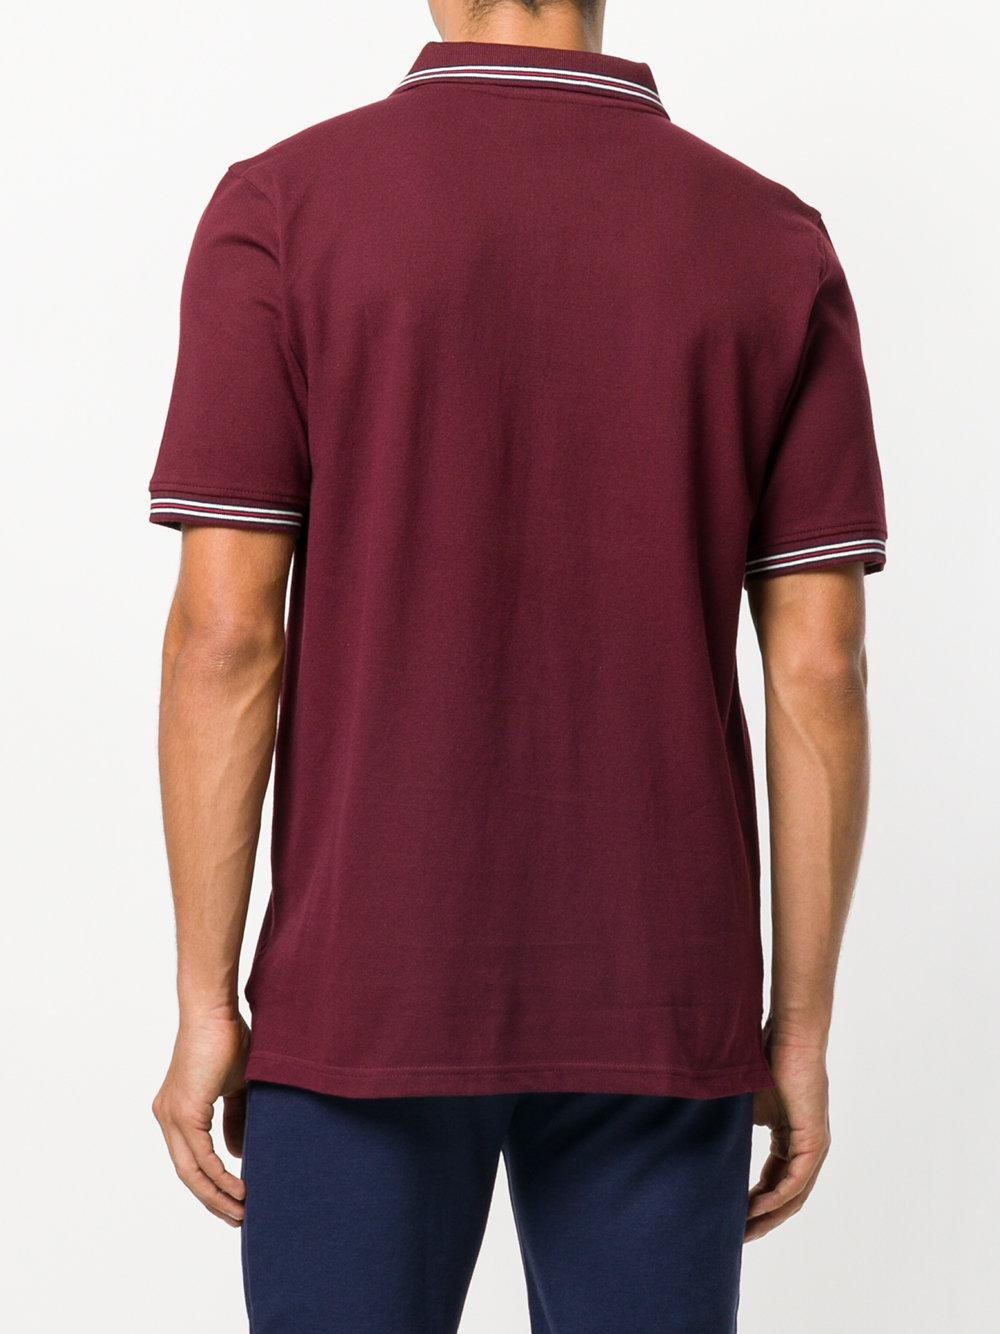 408a91366d91 red polo shirts for men - Ecosia